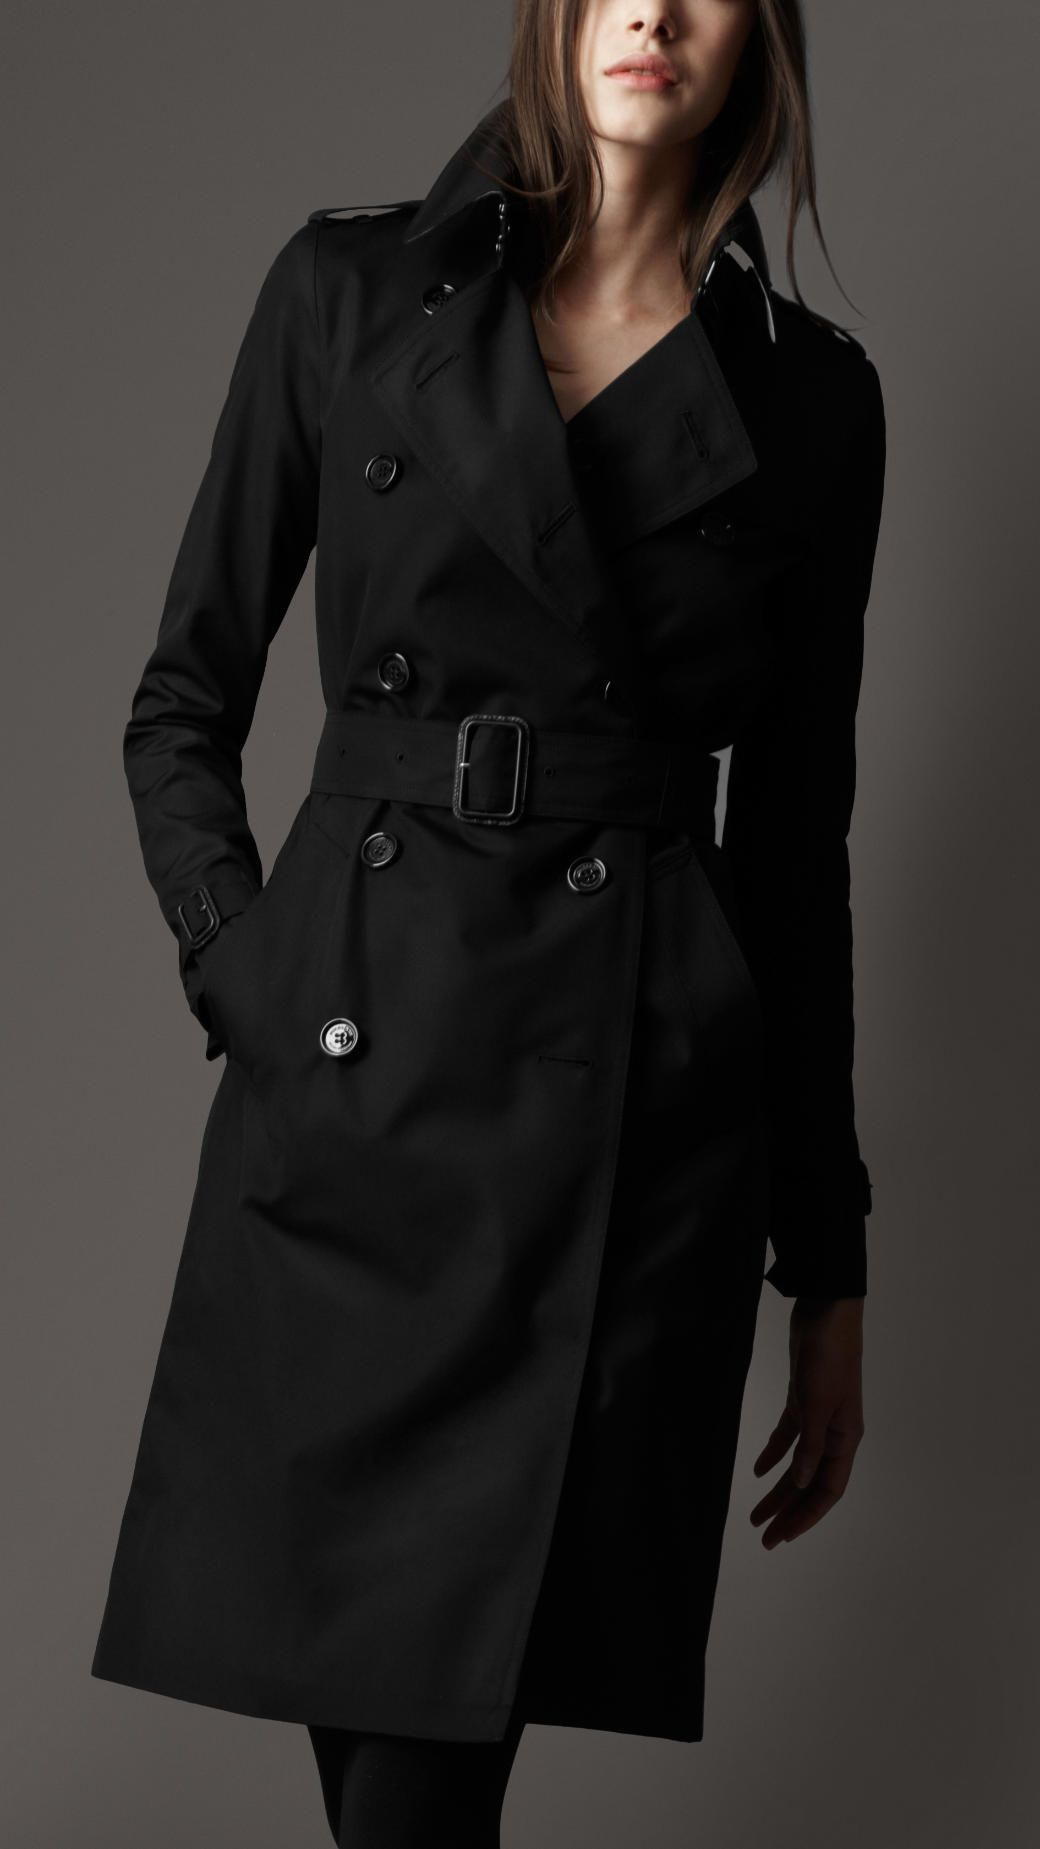 Burberry London women's long trench coat | #BURBERRY | Pinterest ...